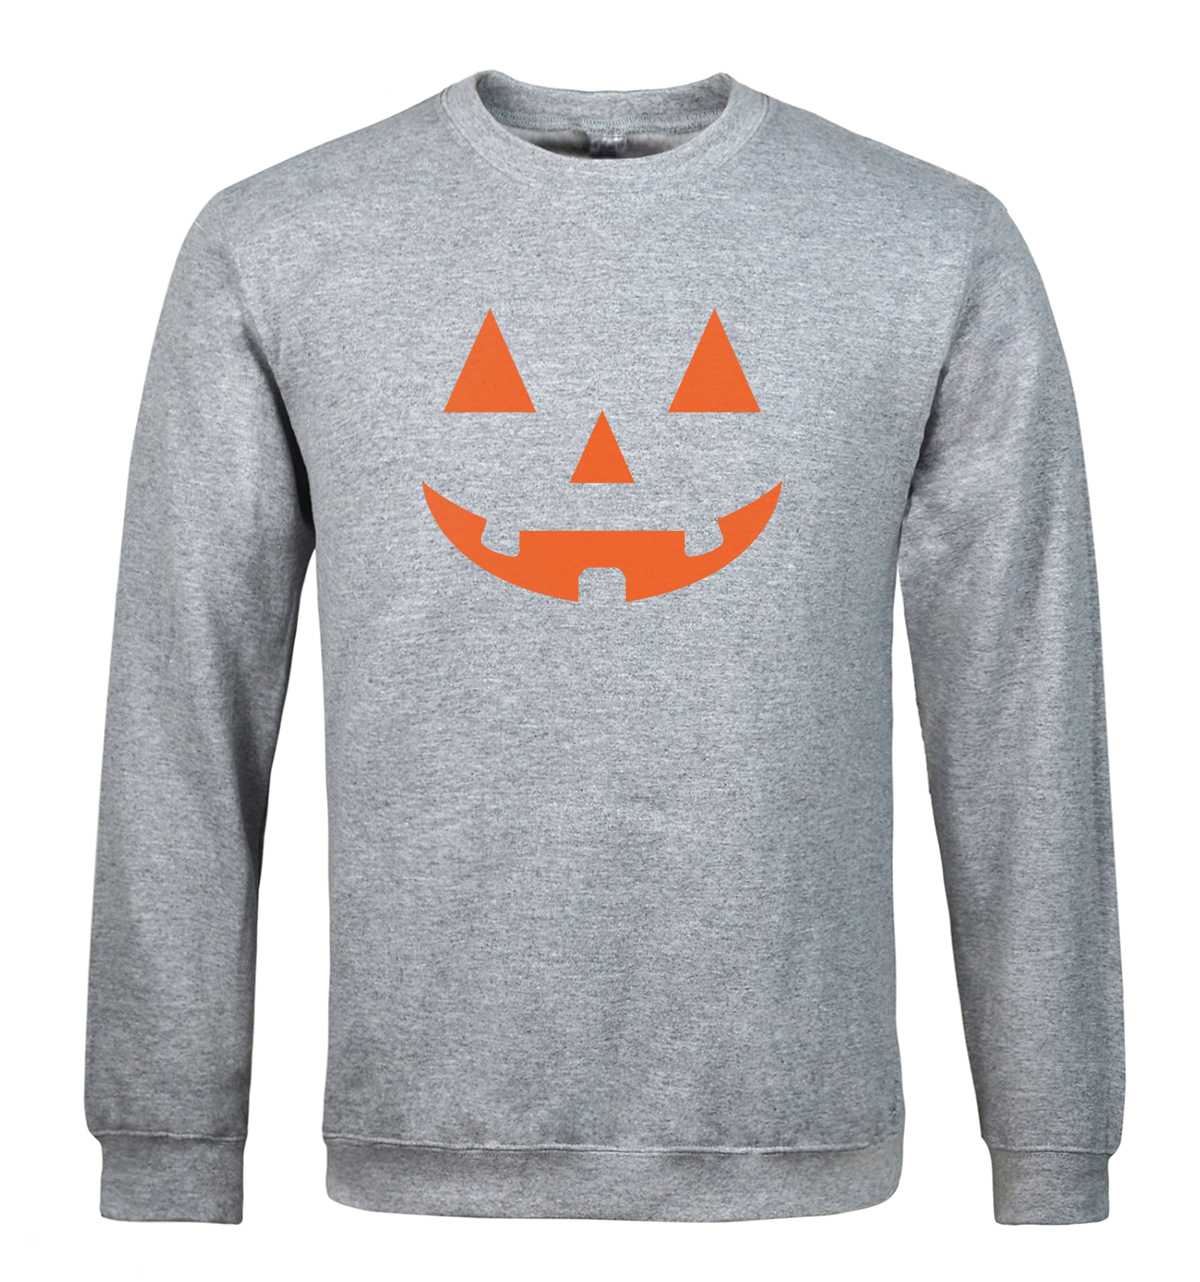 JACK O LANTERN PUMPKIN Halloween men sweatshirt hoodies 2018 spring winter new casual fleece loose fit hip hop style man hooded